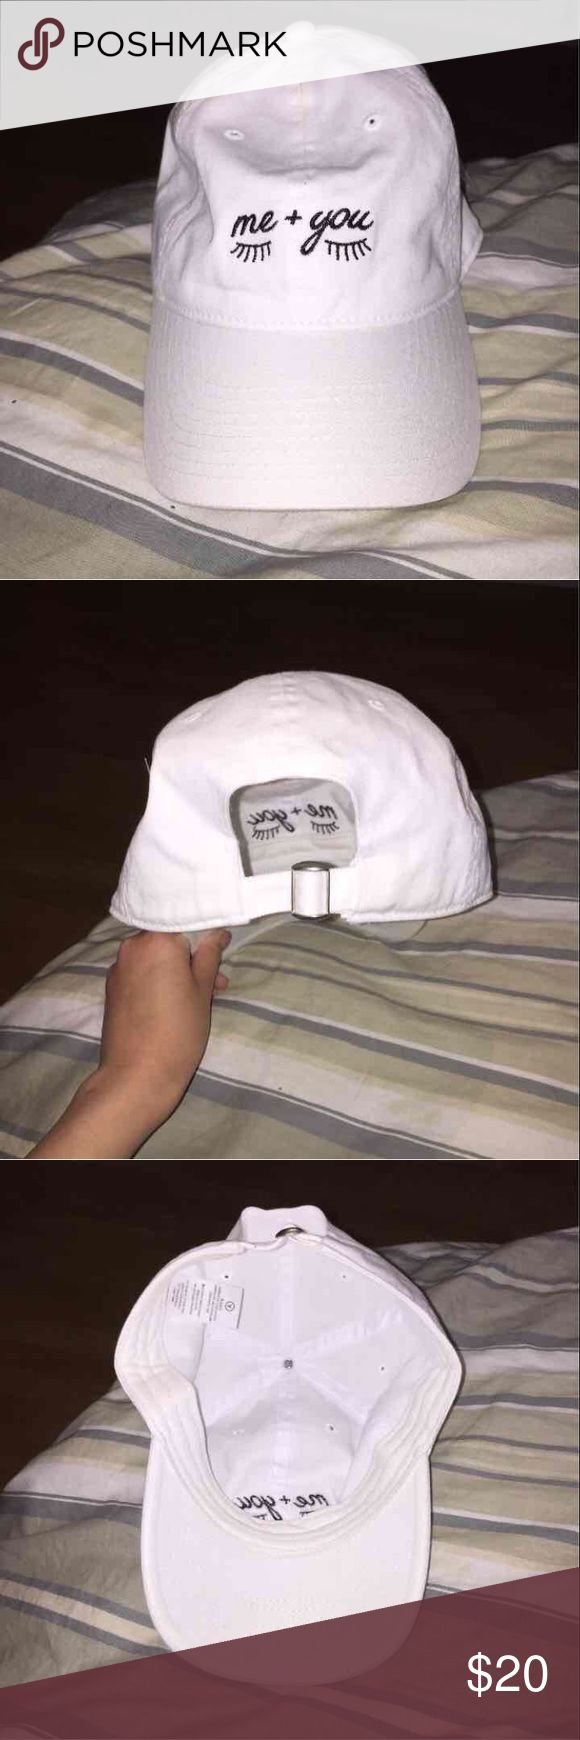 Me + you eyelash hat White dad hat with super cute me + you eyelashes graphic, with adjustable strap Accessories Hats